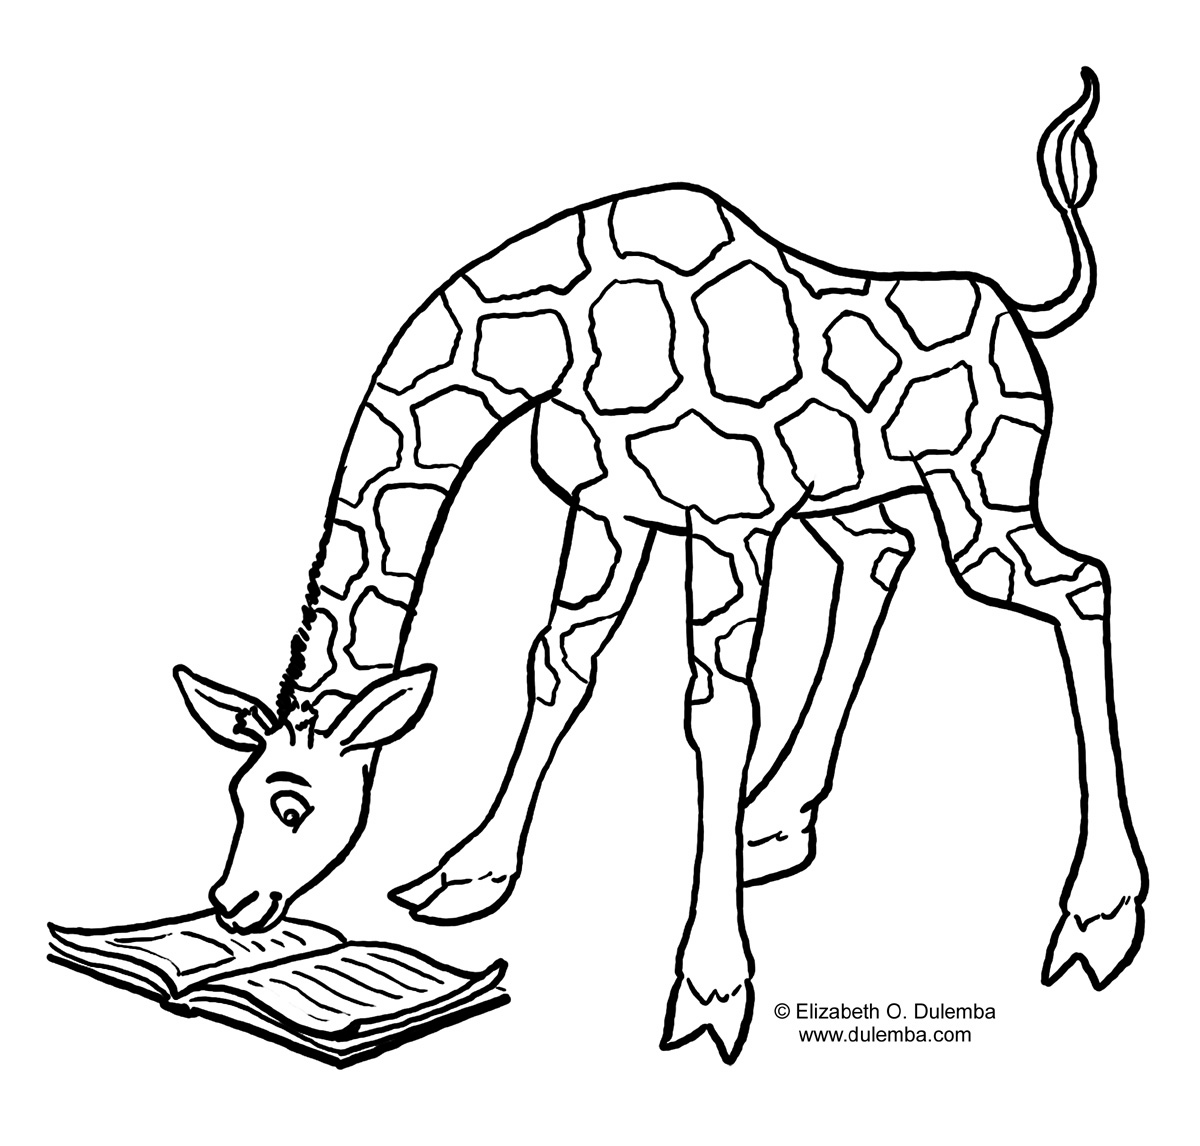 Outline of Giraffe for Preschoolers http://printablecolouringpages.co.uk/?s=giraffe%20outline&page=1